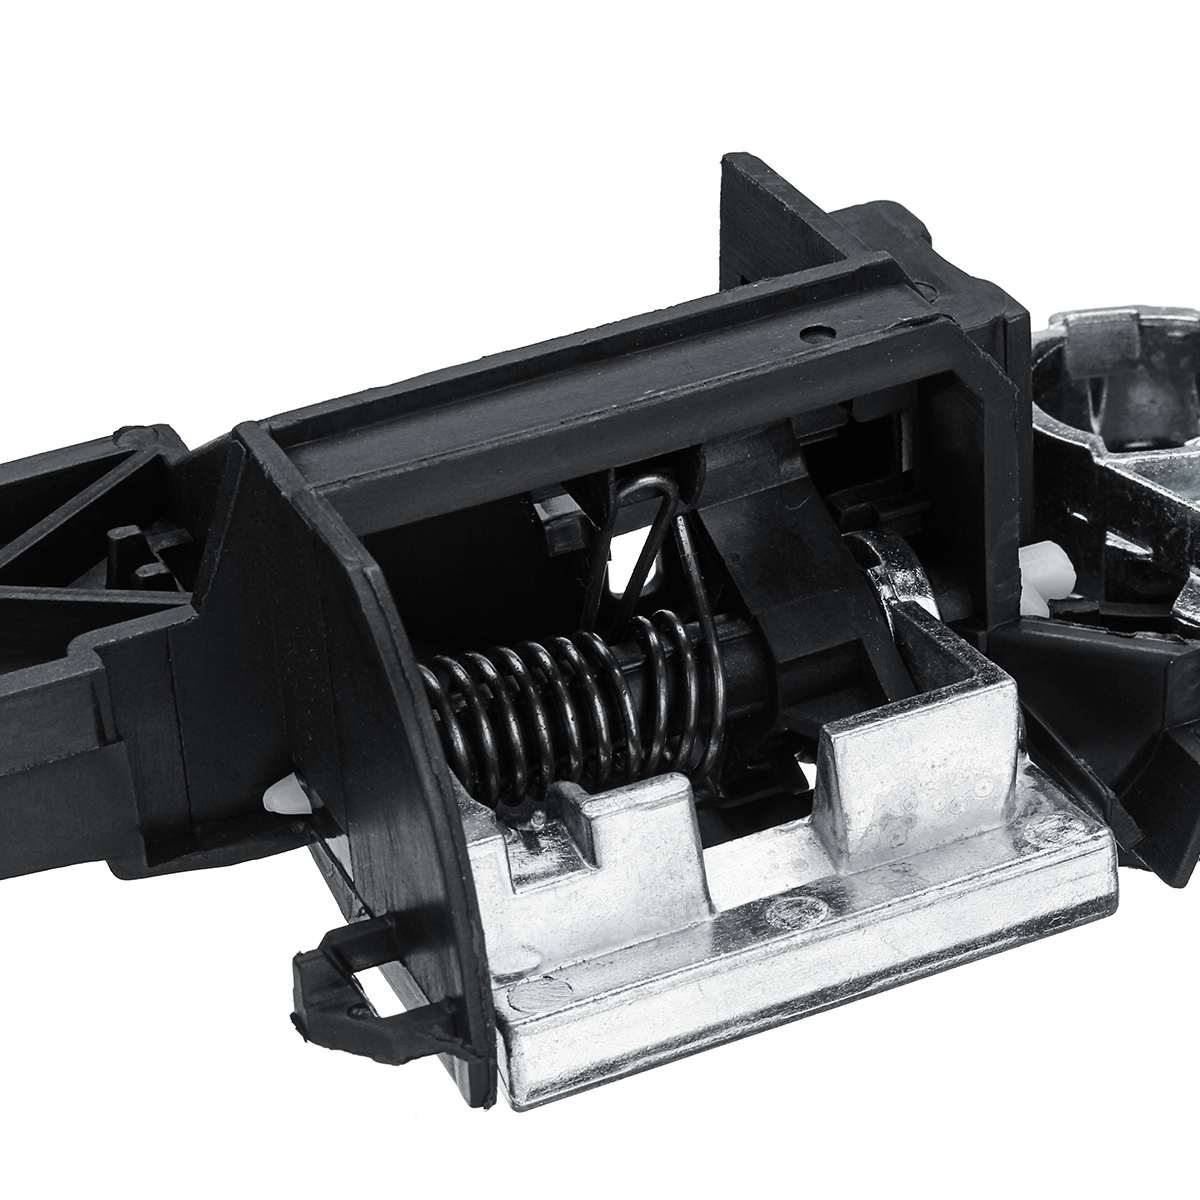 2006 Motorhome class c FORD ECONOLINE VAN CHASSIS Post mount spotlight LED 6 inch -Chrome Driver side WITH install kit